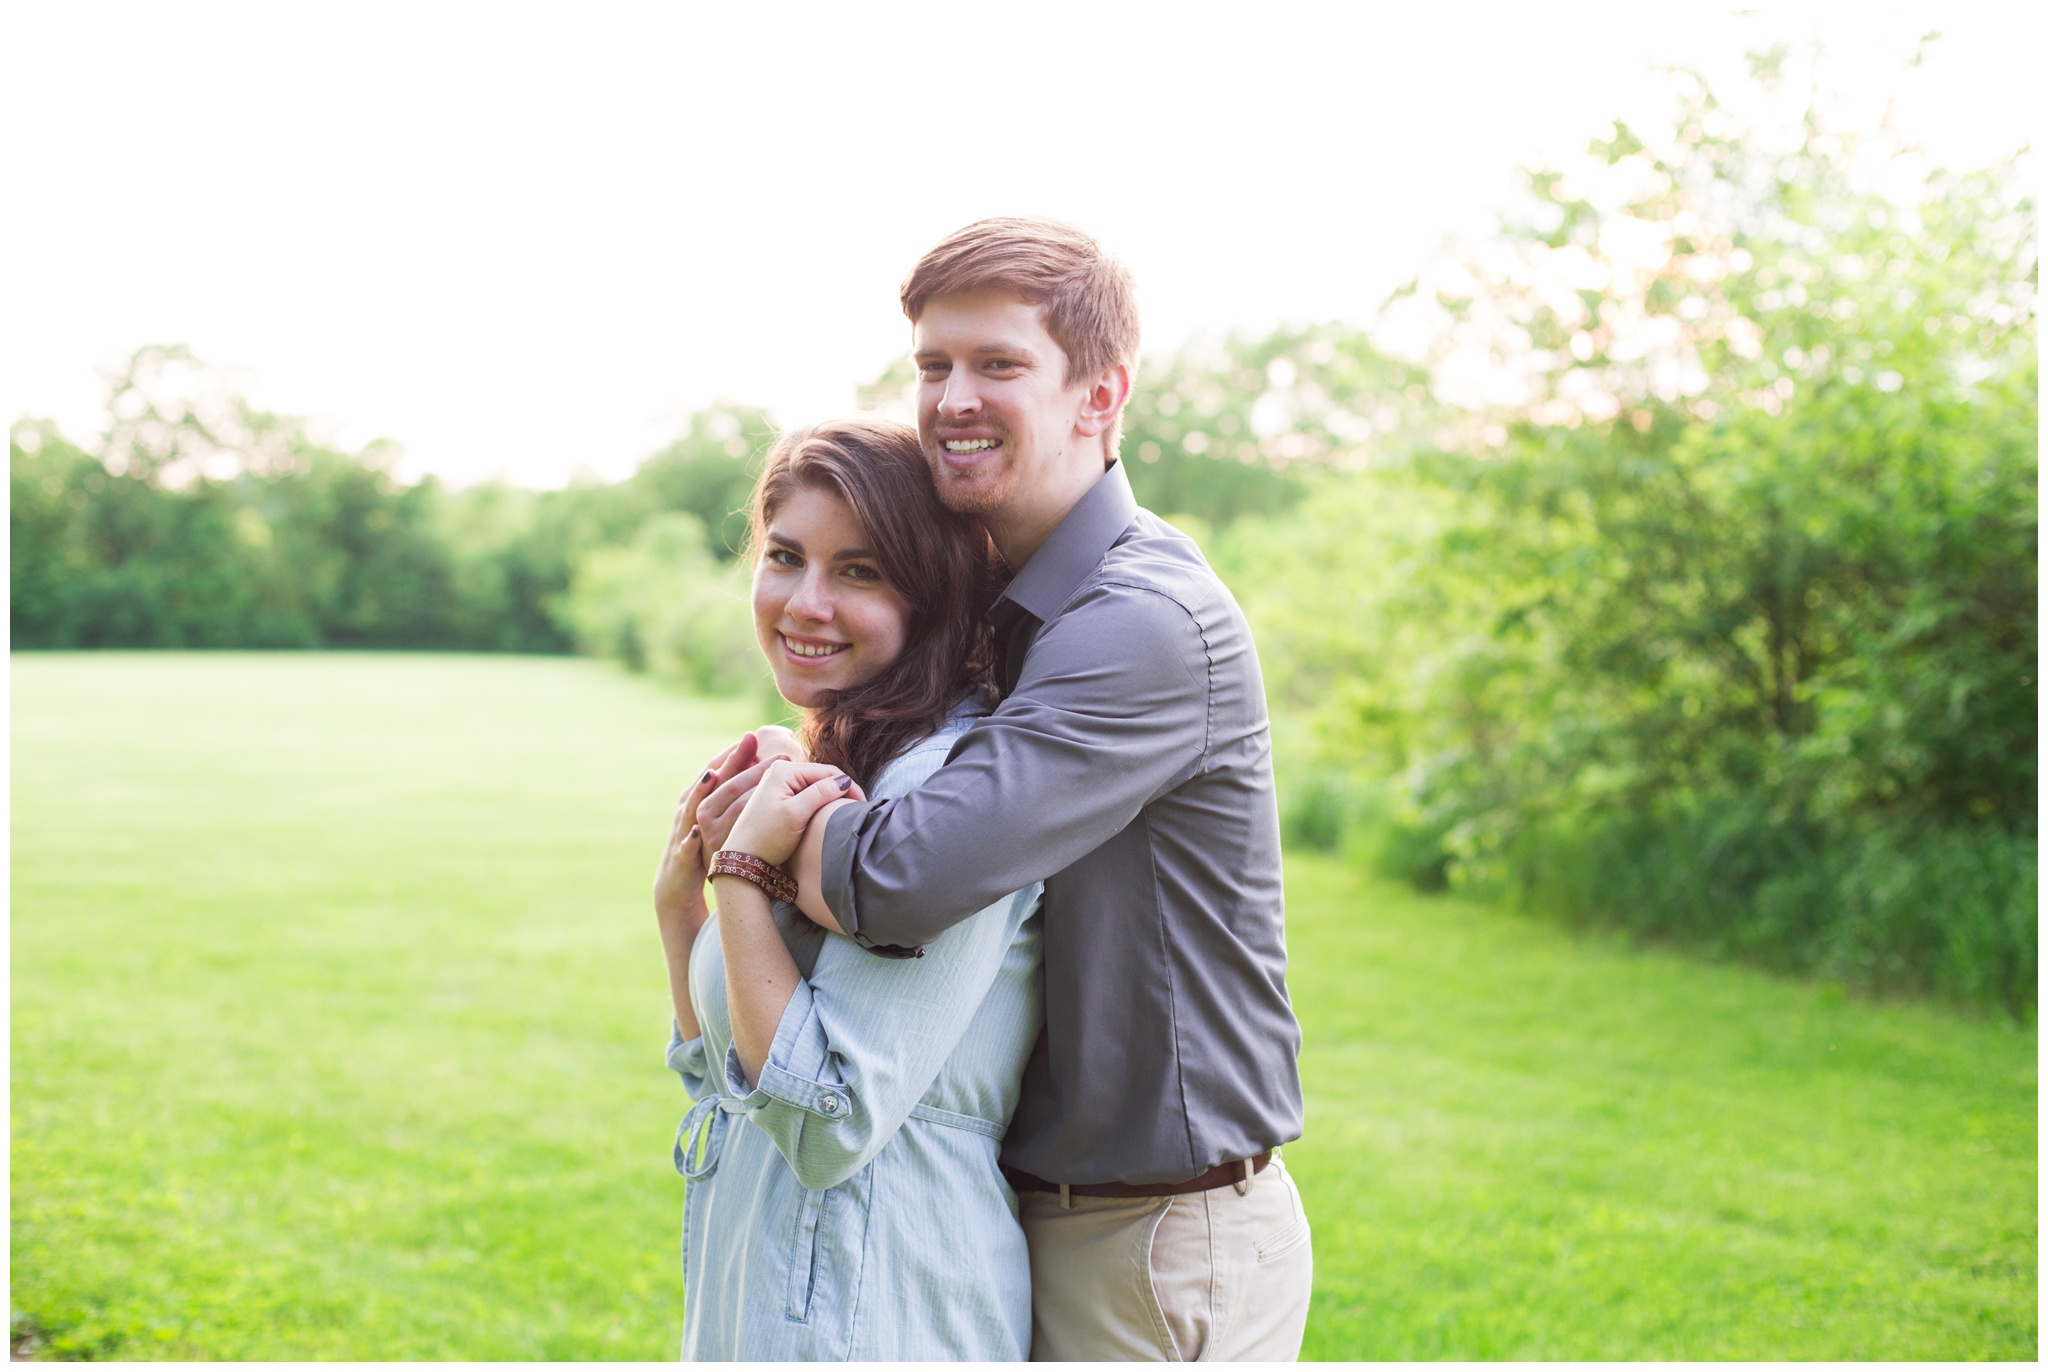 Potters Bridge Park engagement session in Noblesville Indiana